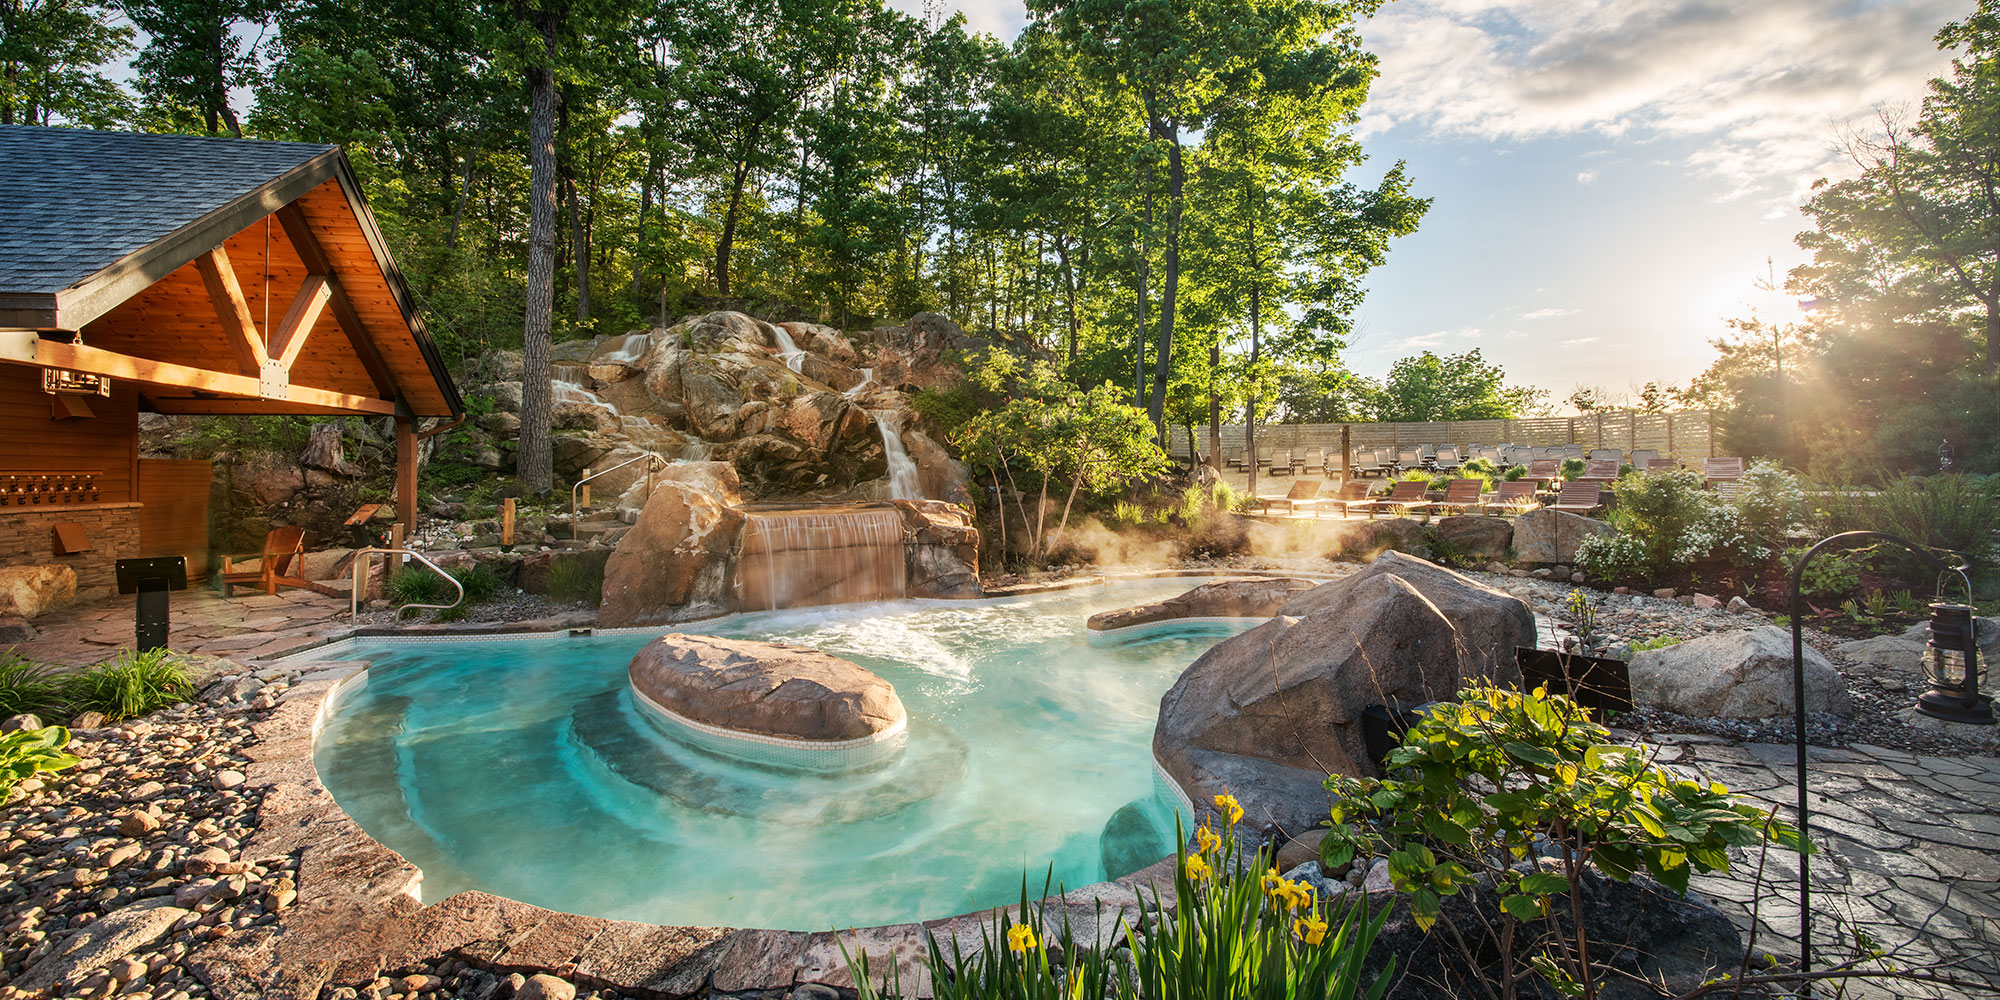 remodeling and patio with to under inflatable tub eclectic in natural alongside innovative ideas idea for impressive pool andunder contemporary backyard deck landscaping aboveground hot next